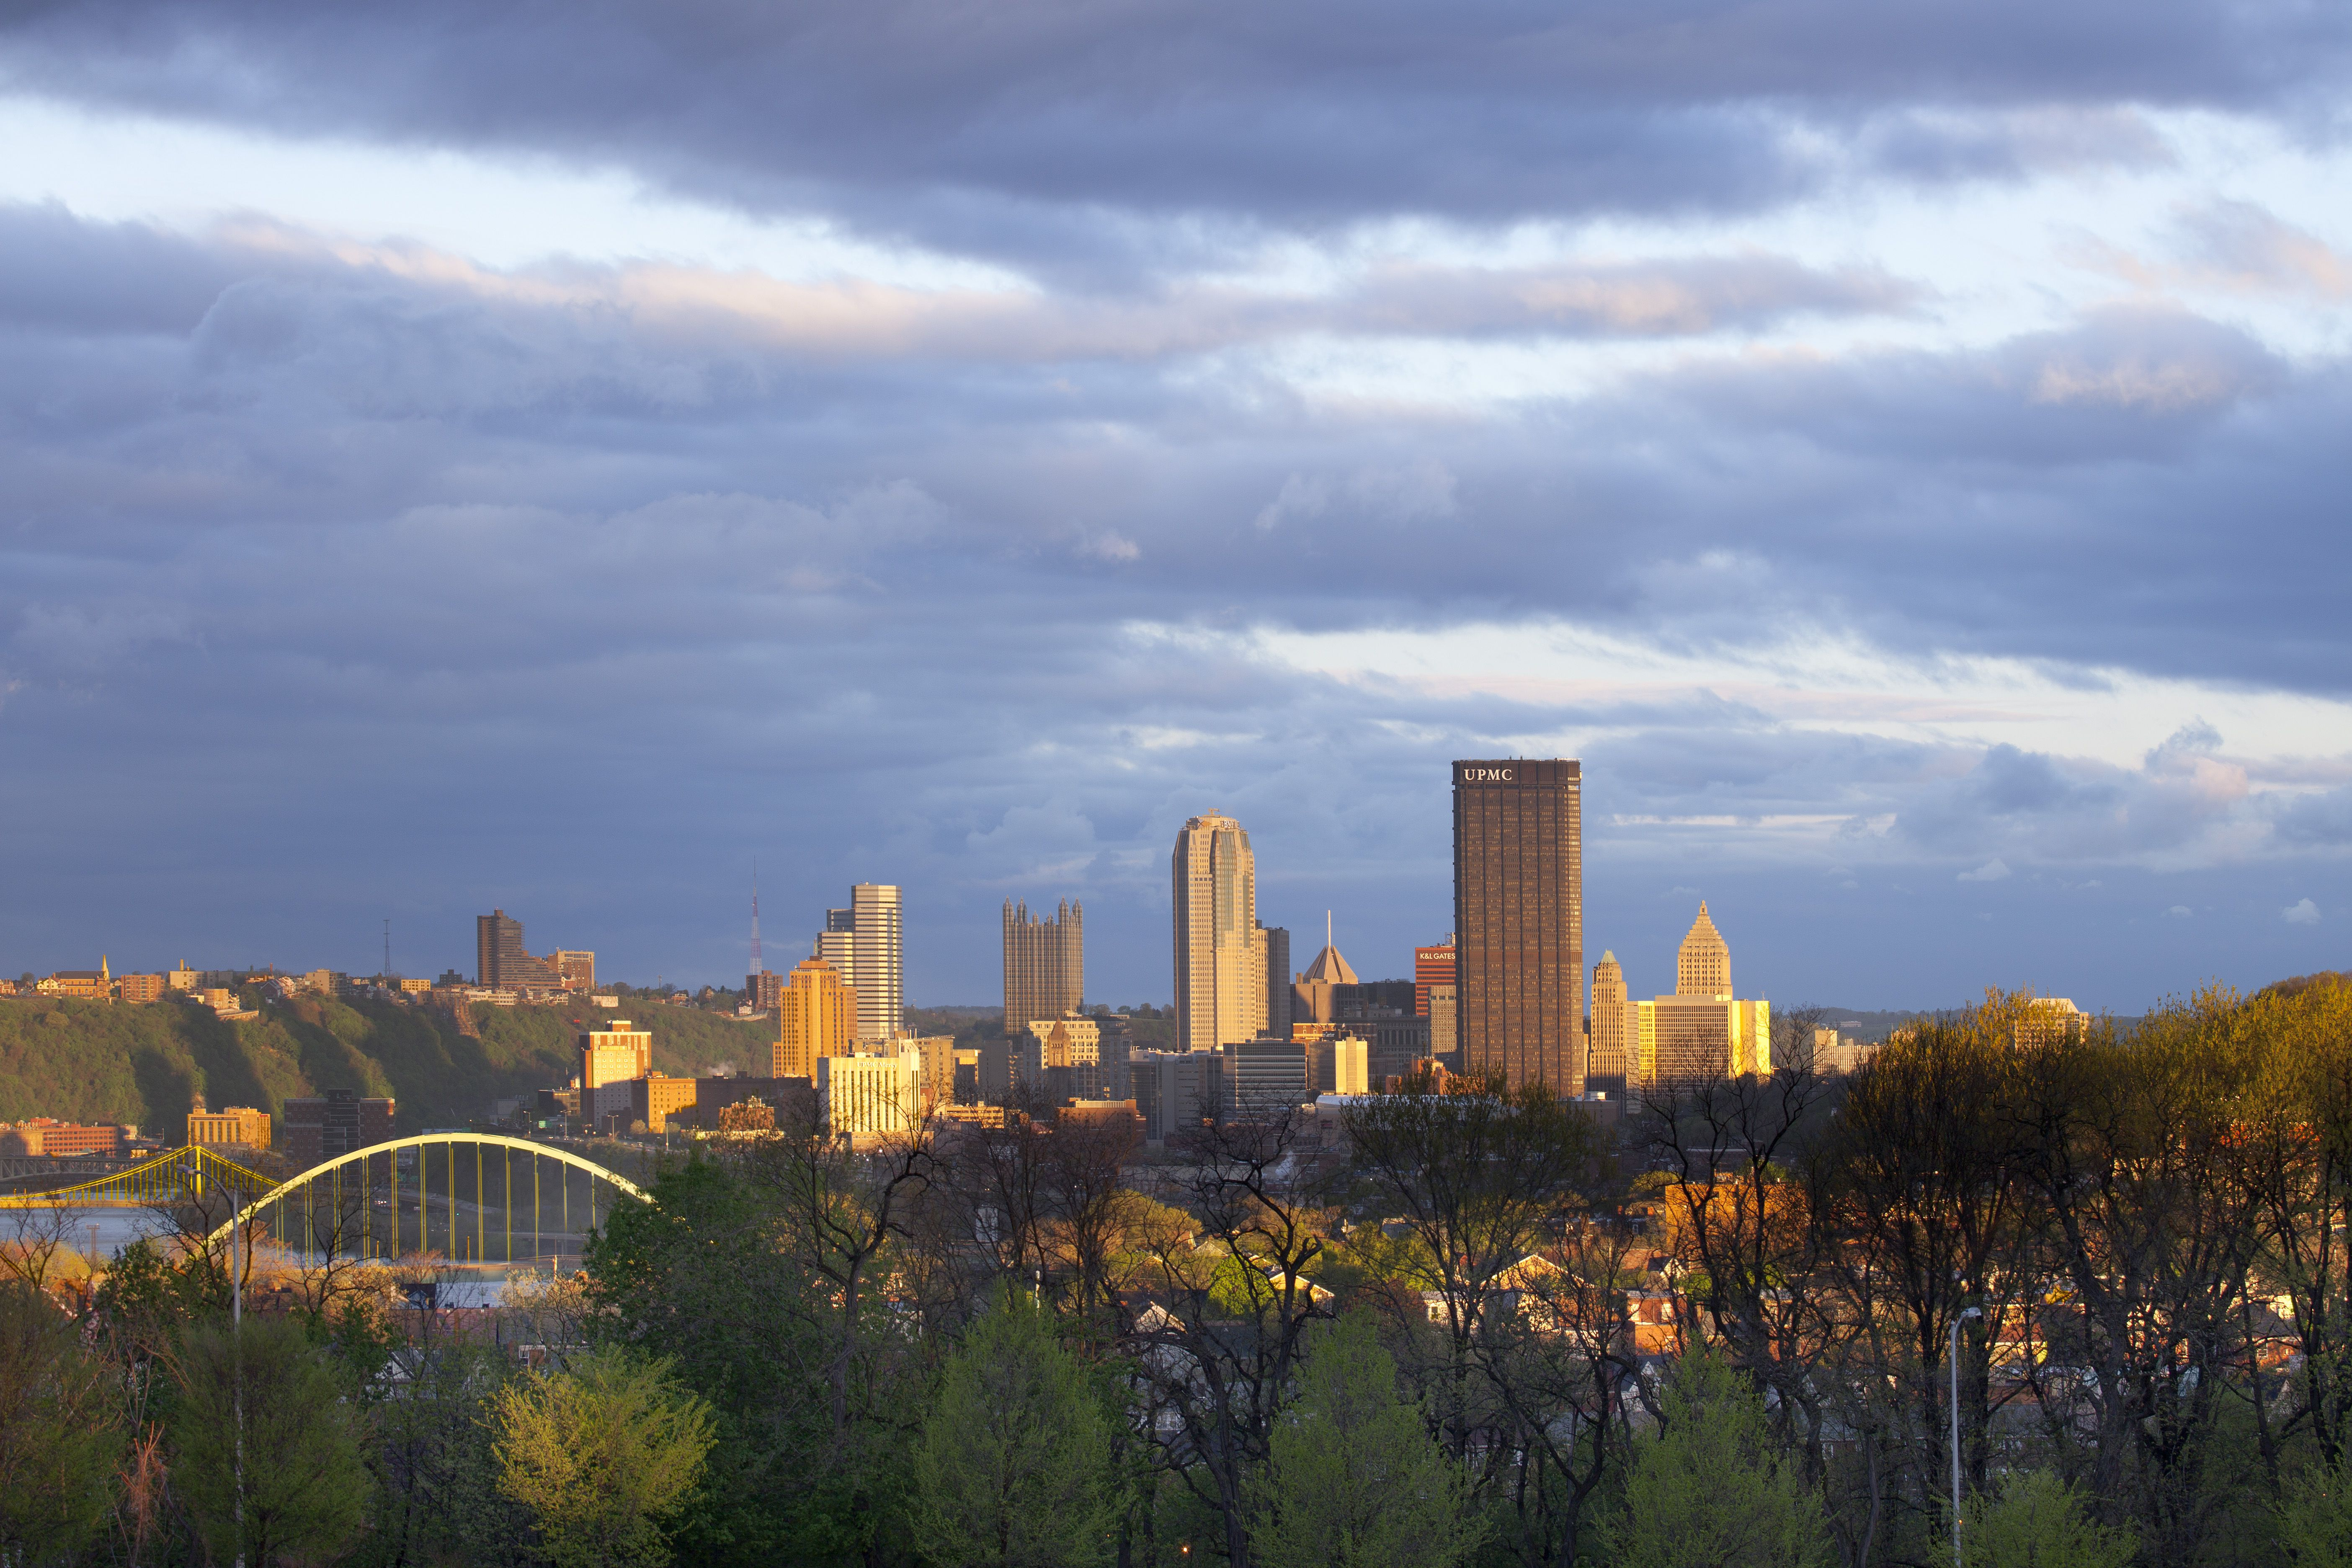 Skyline View From Oakland, Pittsburgh, Pennsylvania, USA